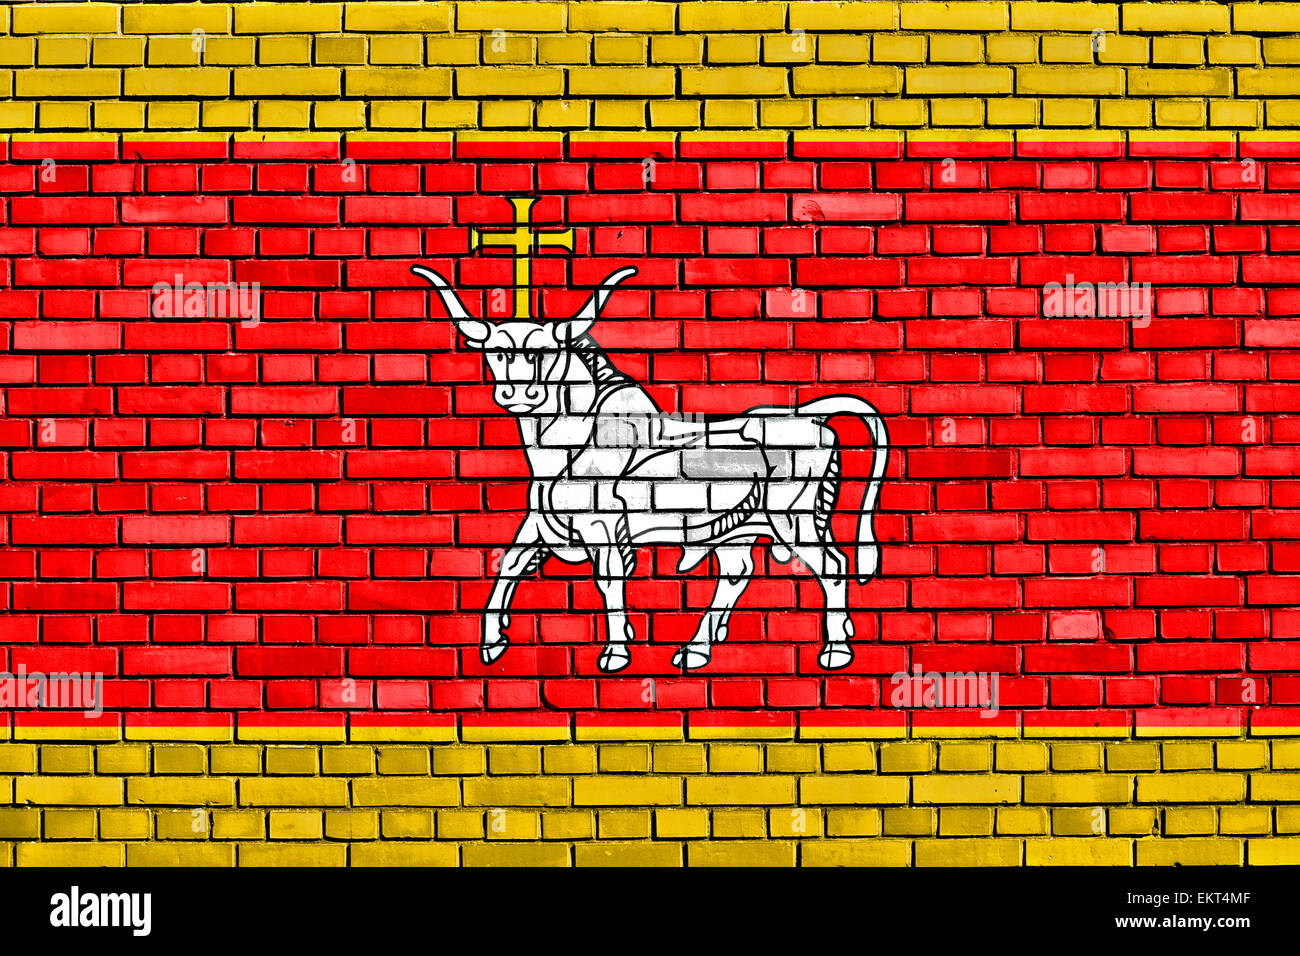 flag of Kaunas painted on brick wall - Stock Image